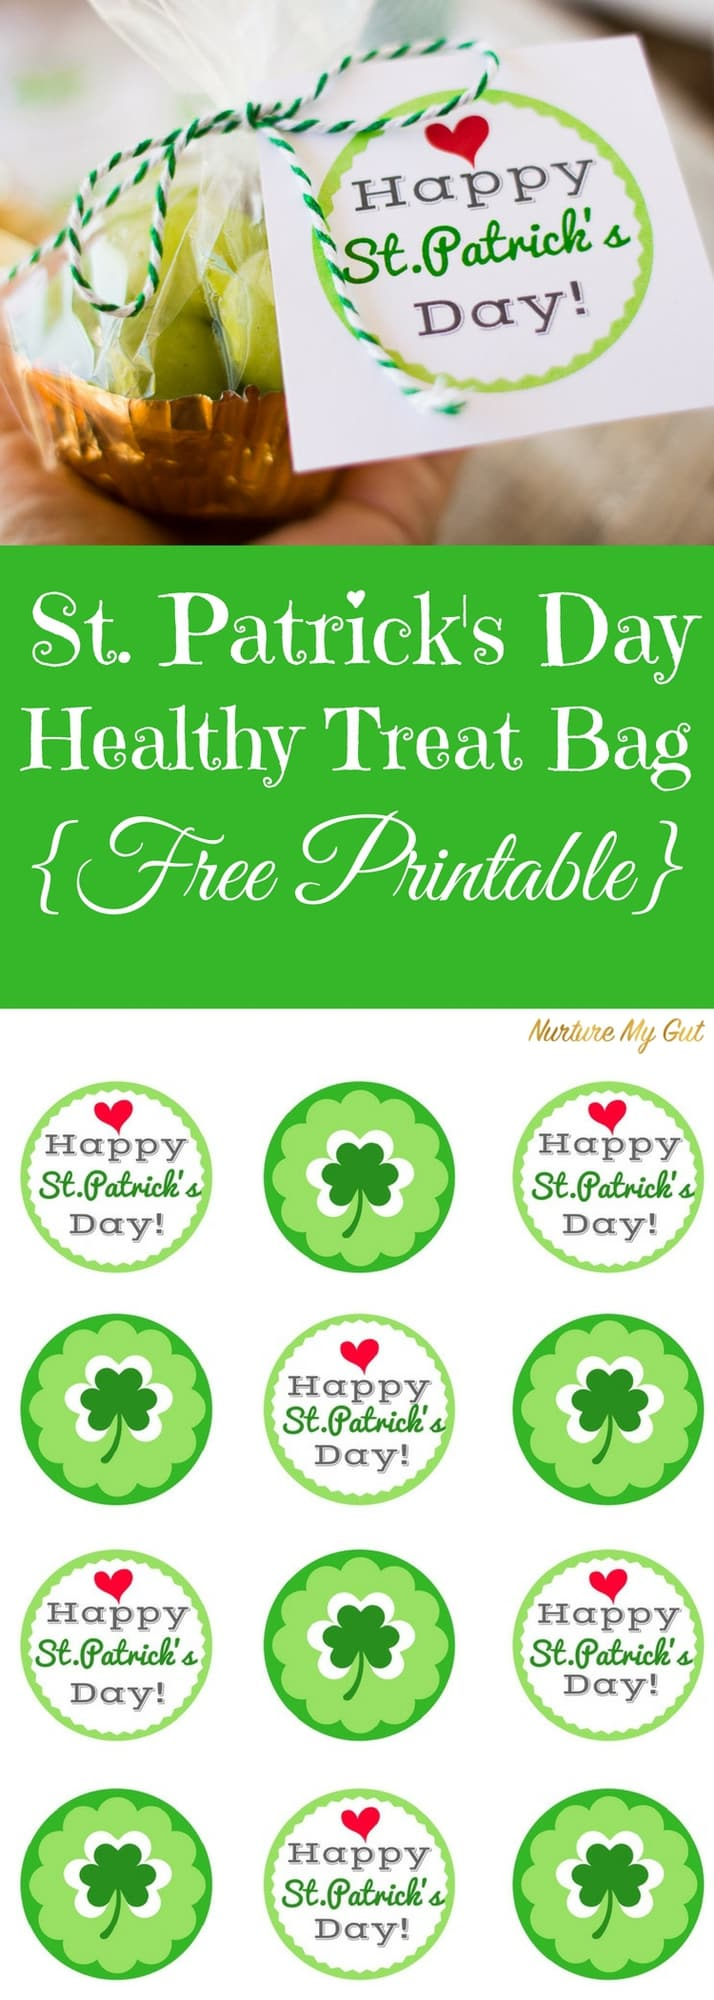 St. Patrick's Day Healthy Treat Bag